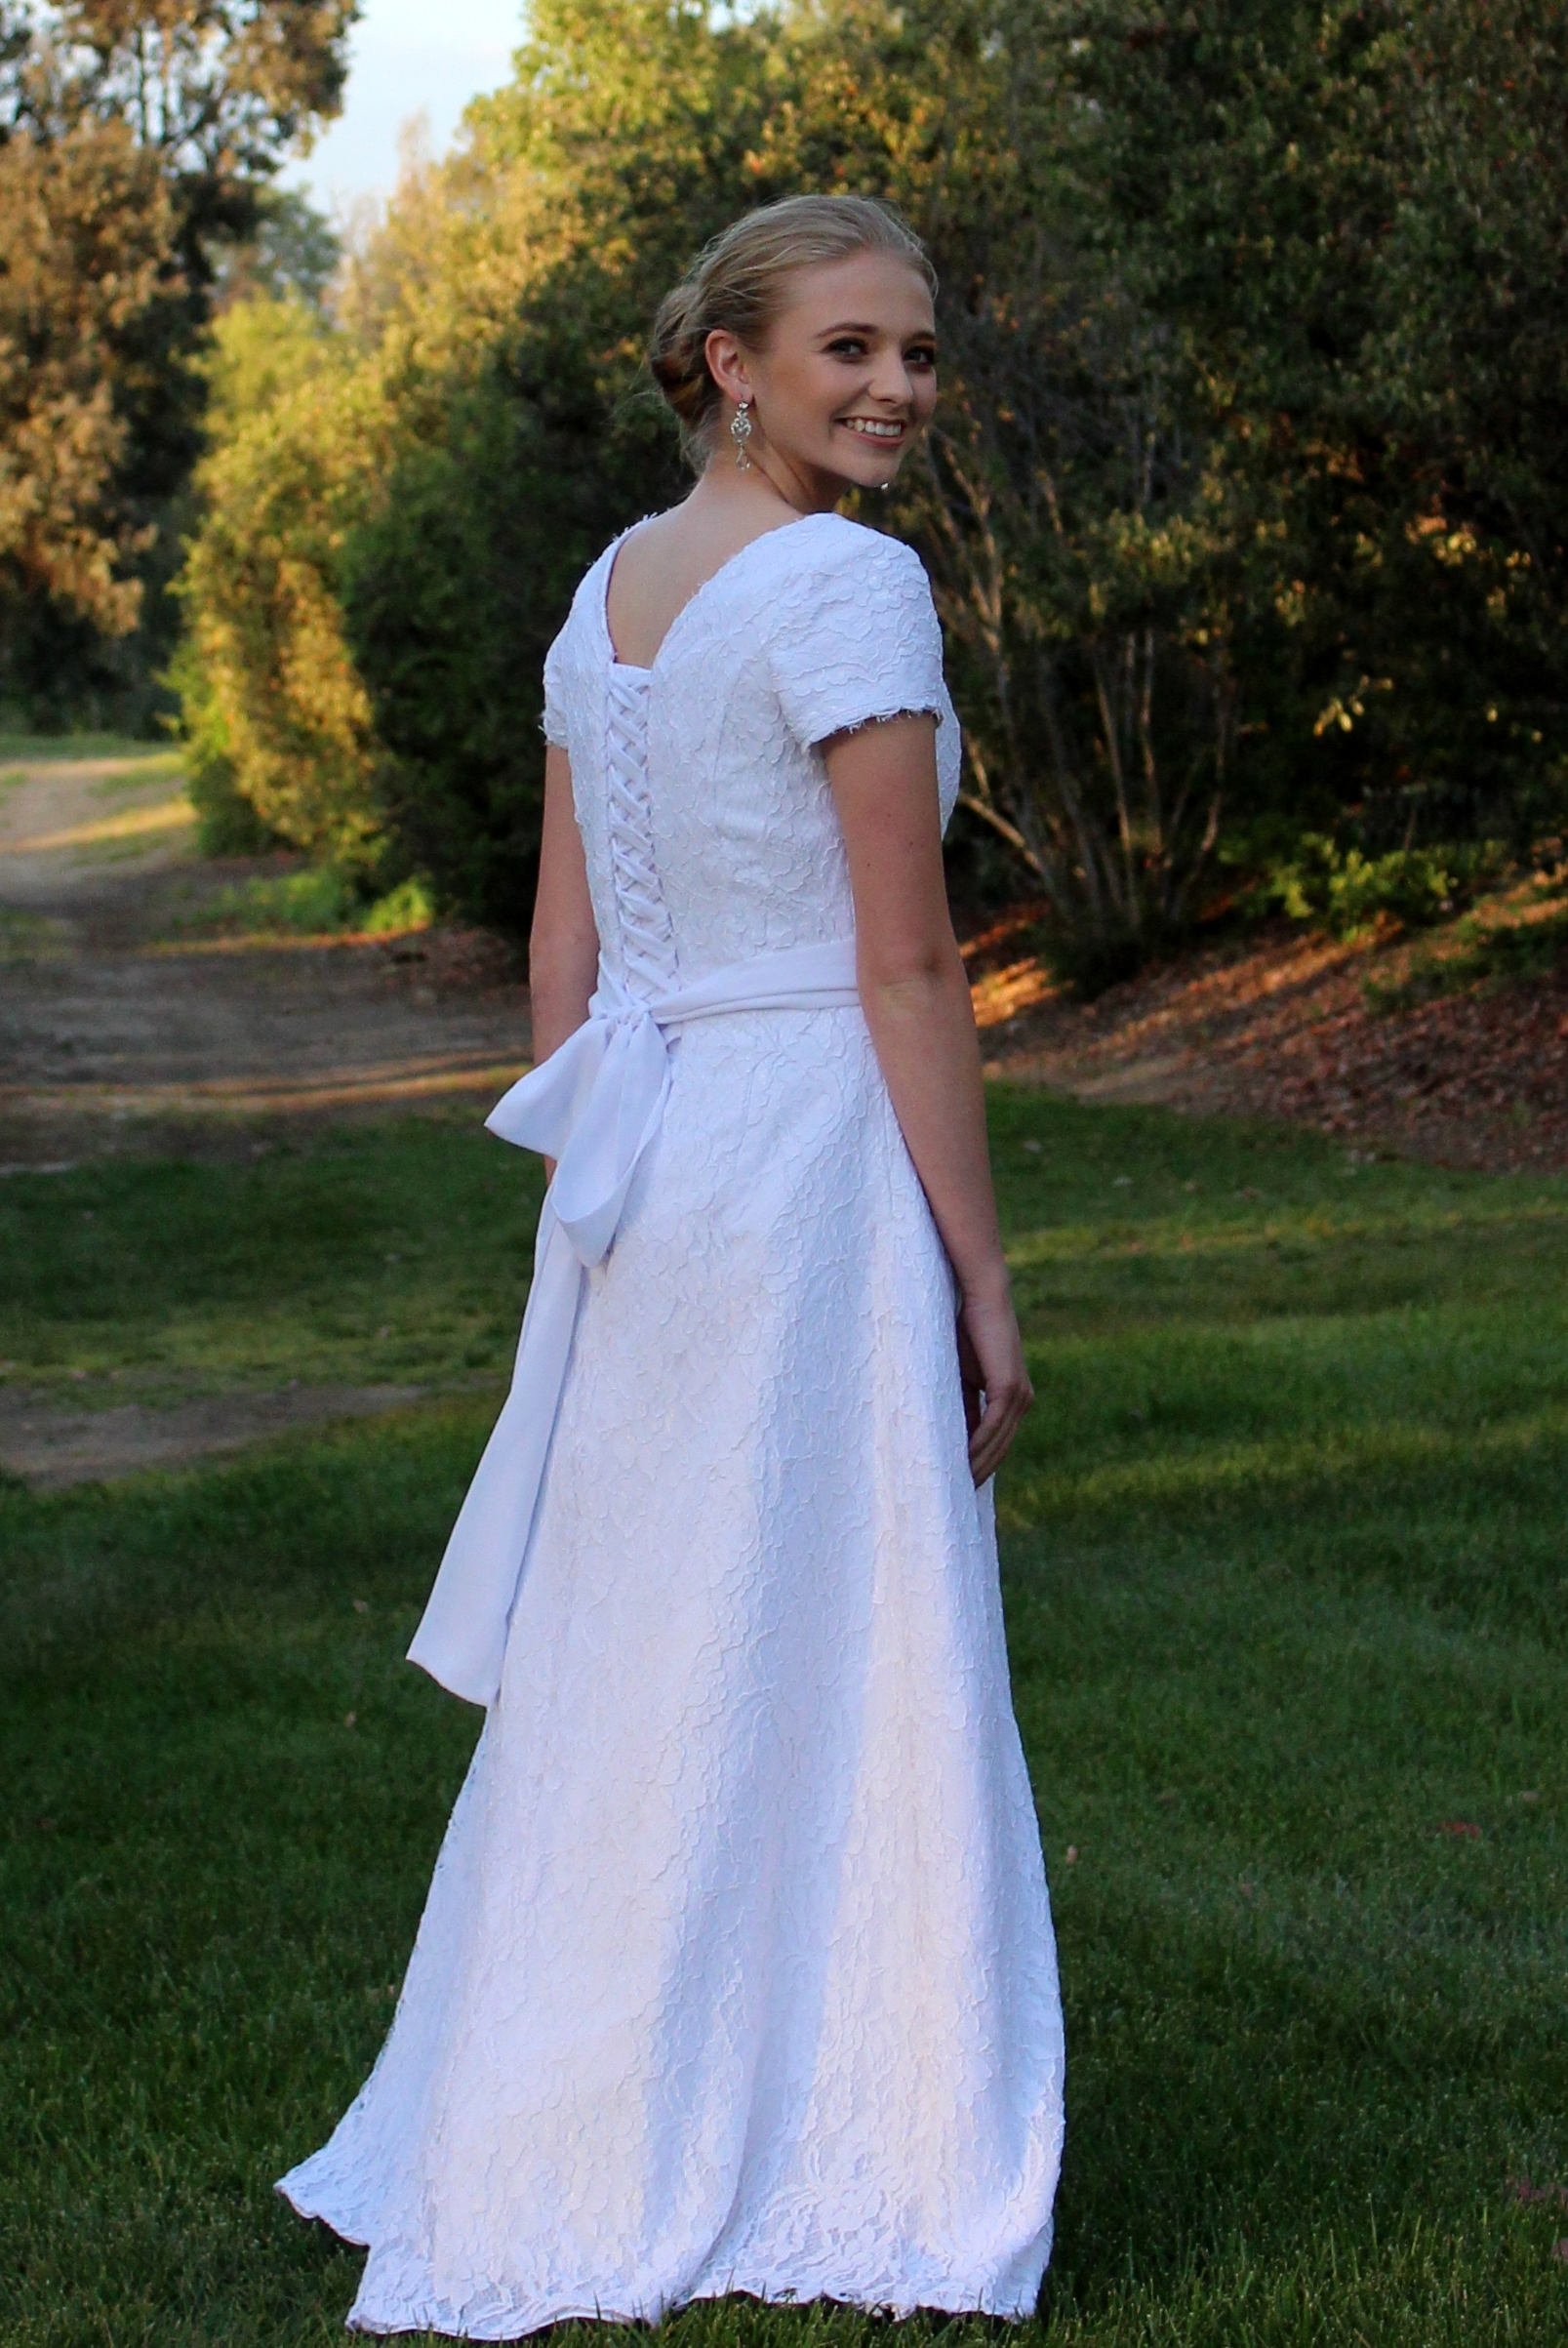 Kimberly White Lace Modest Wedding Dress with Sleeves